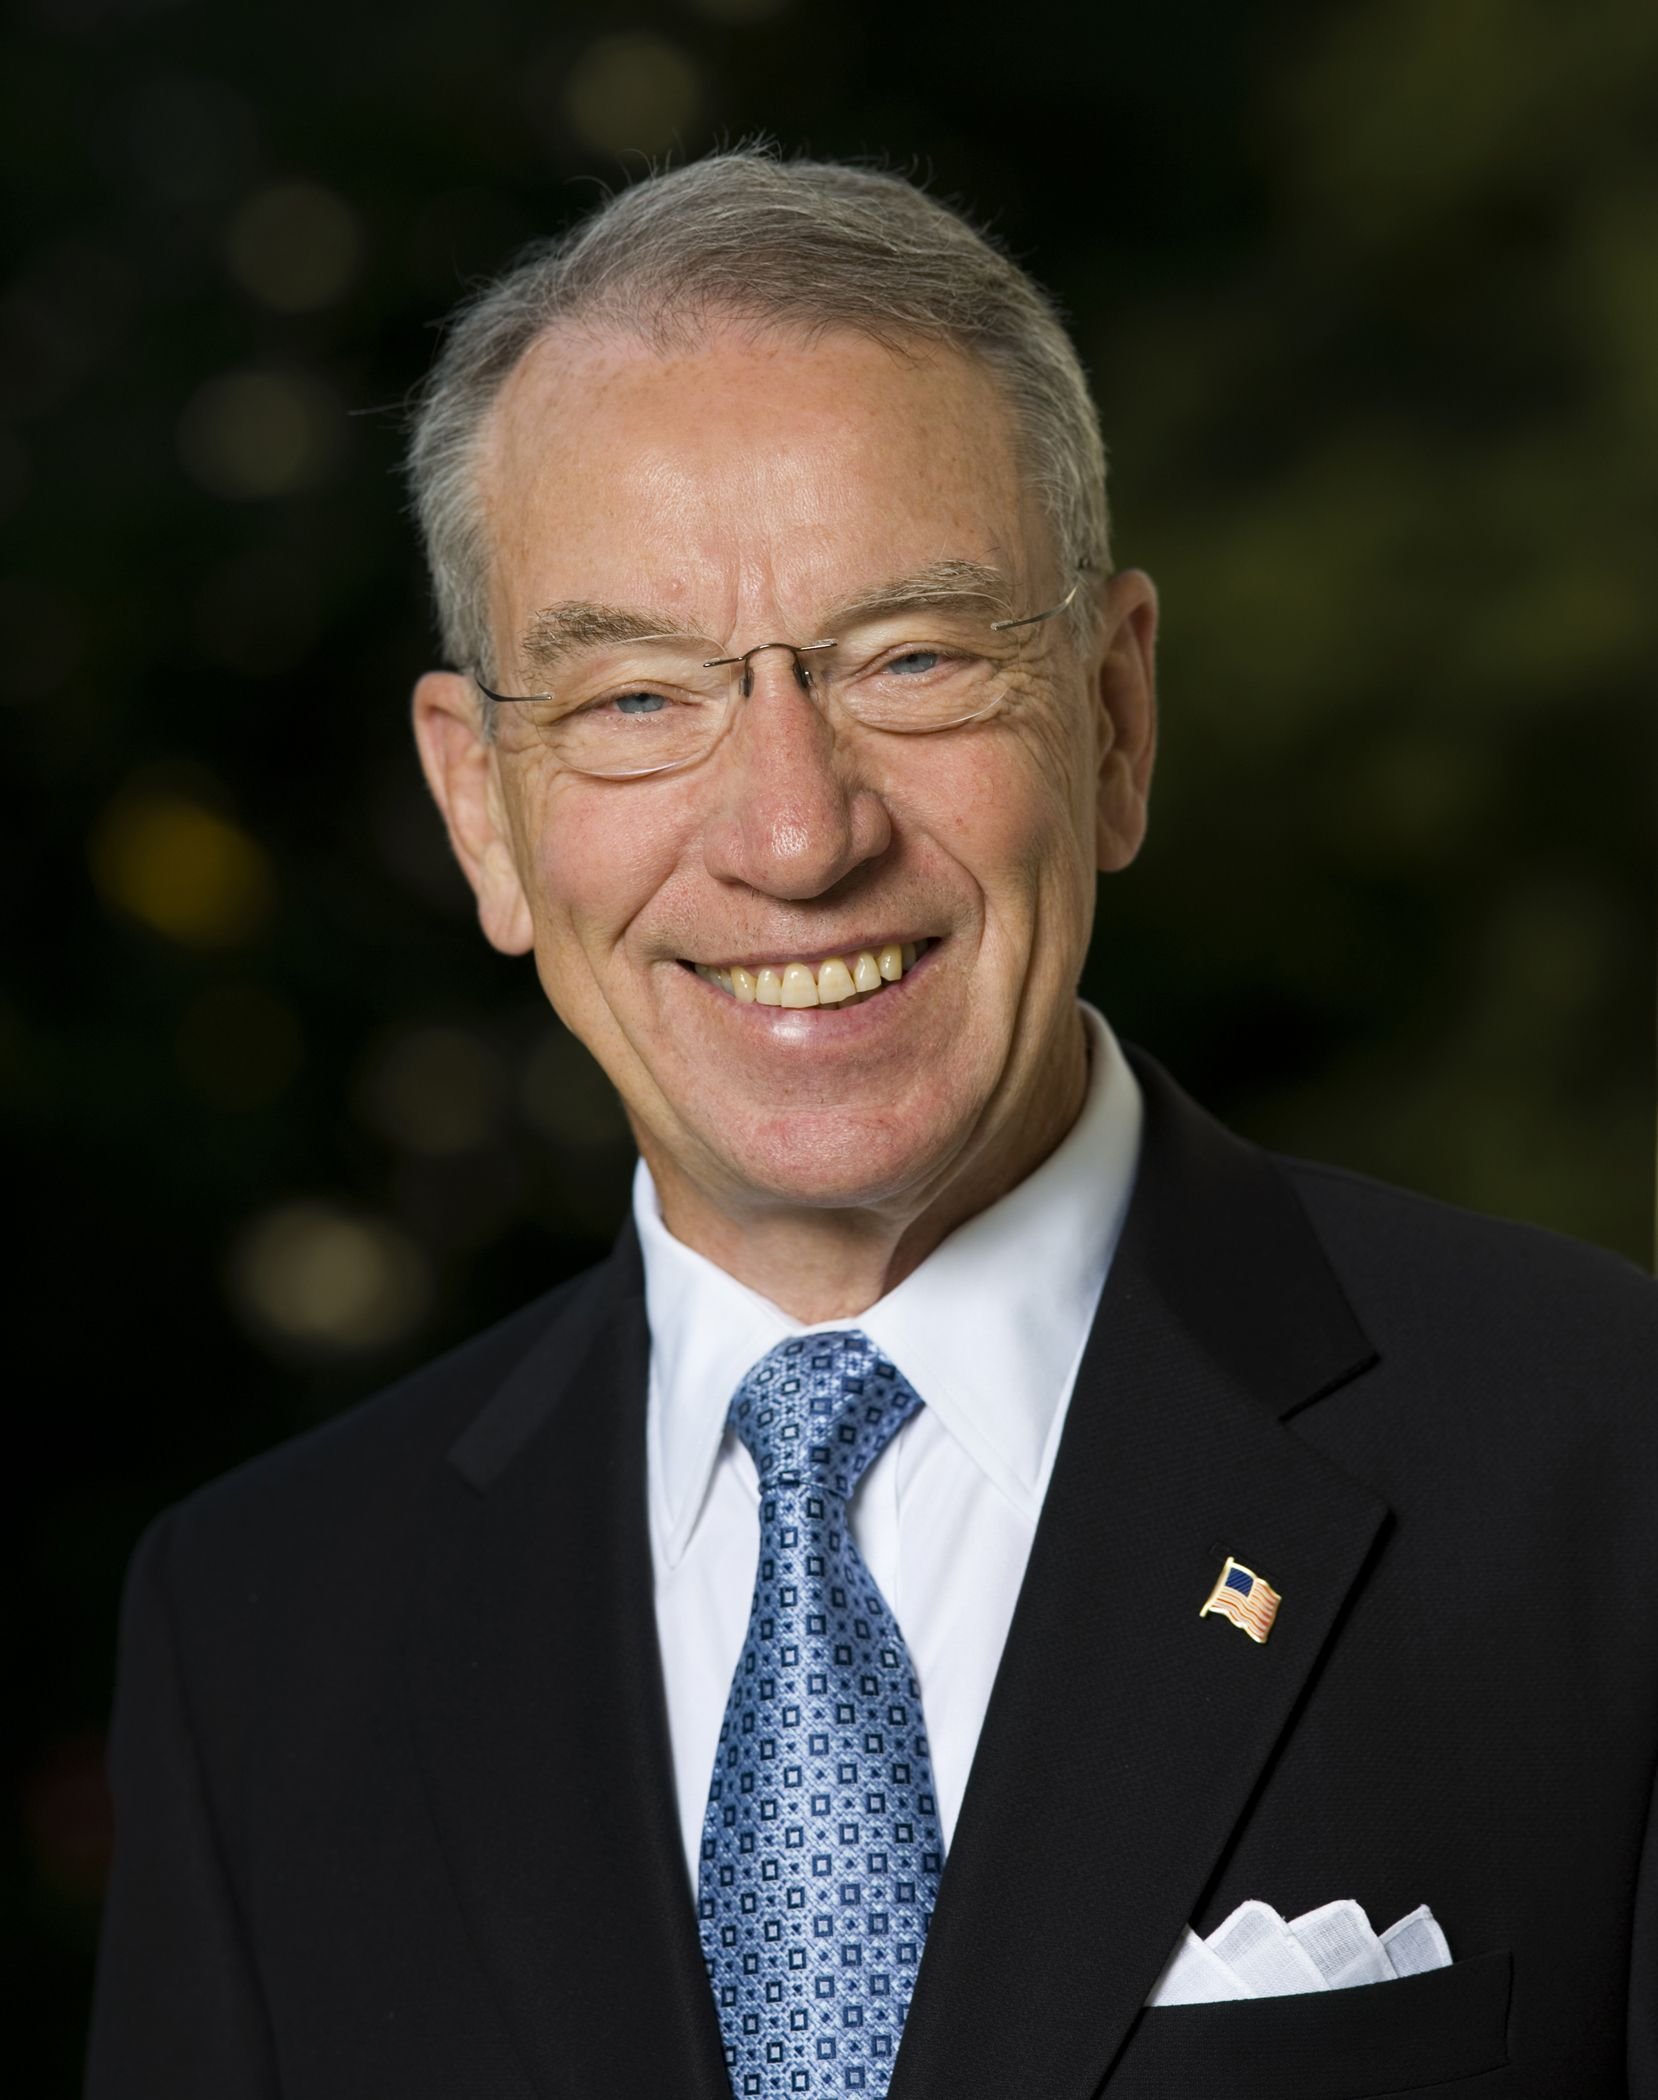 chuck grassley official